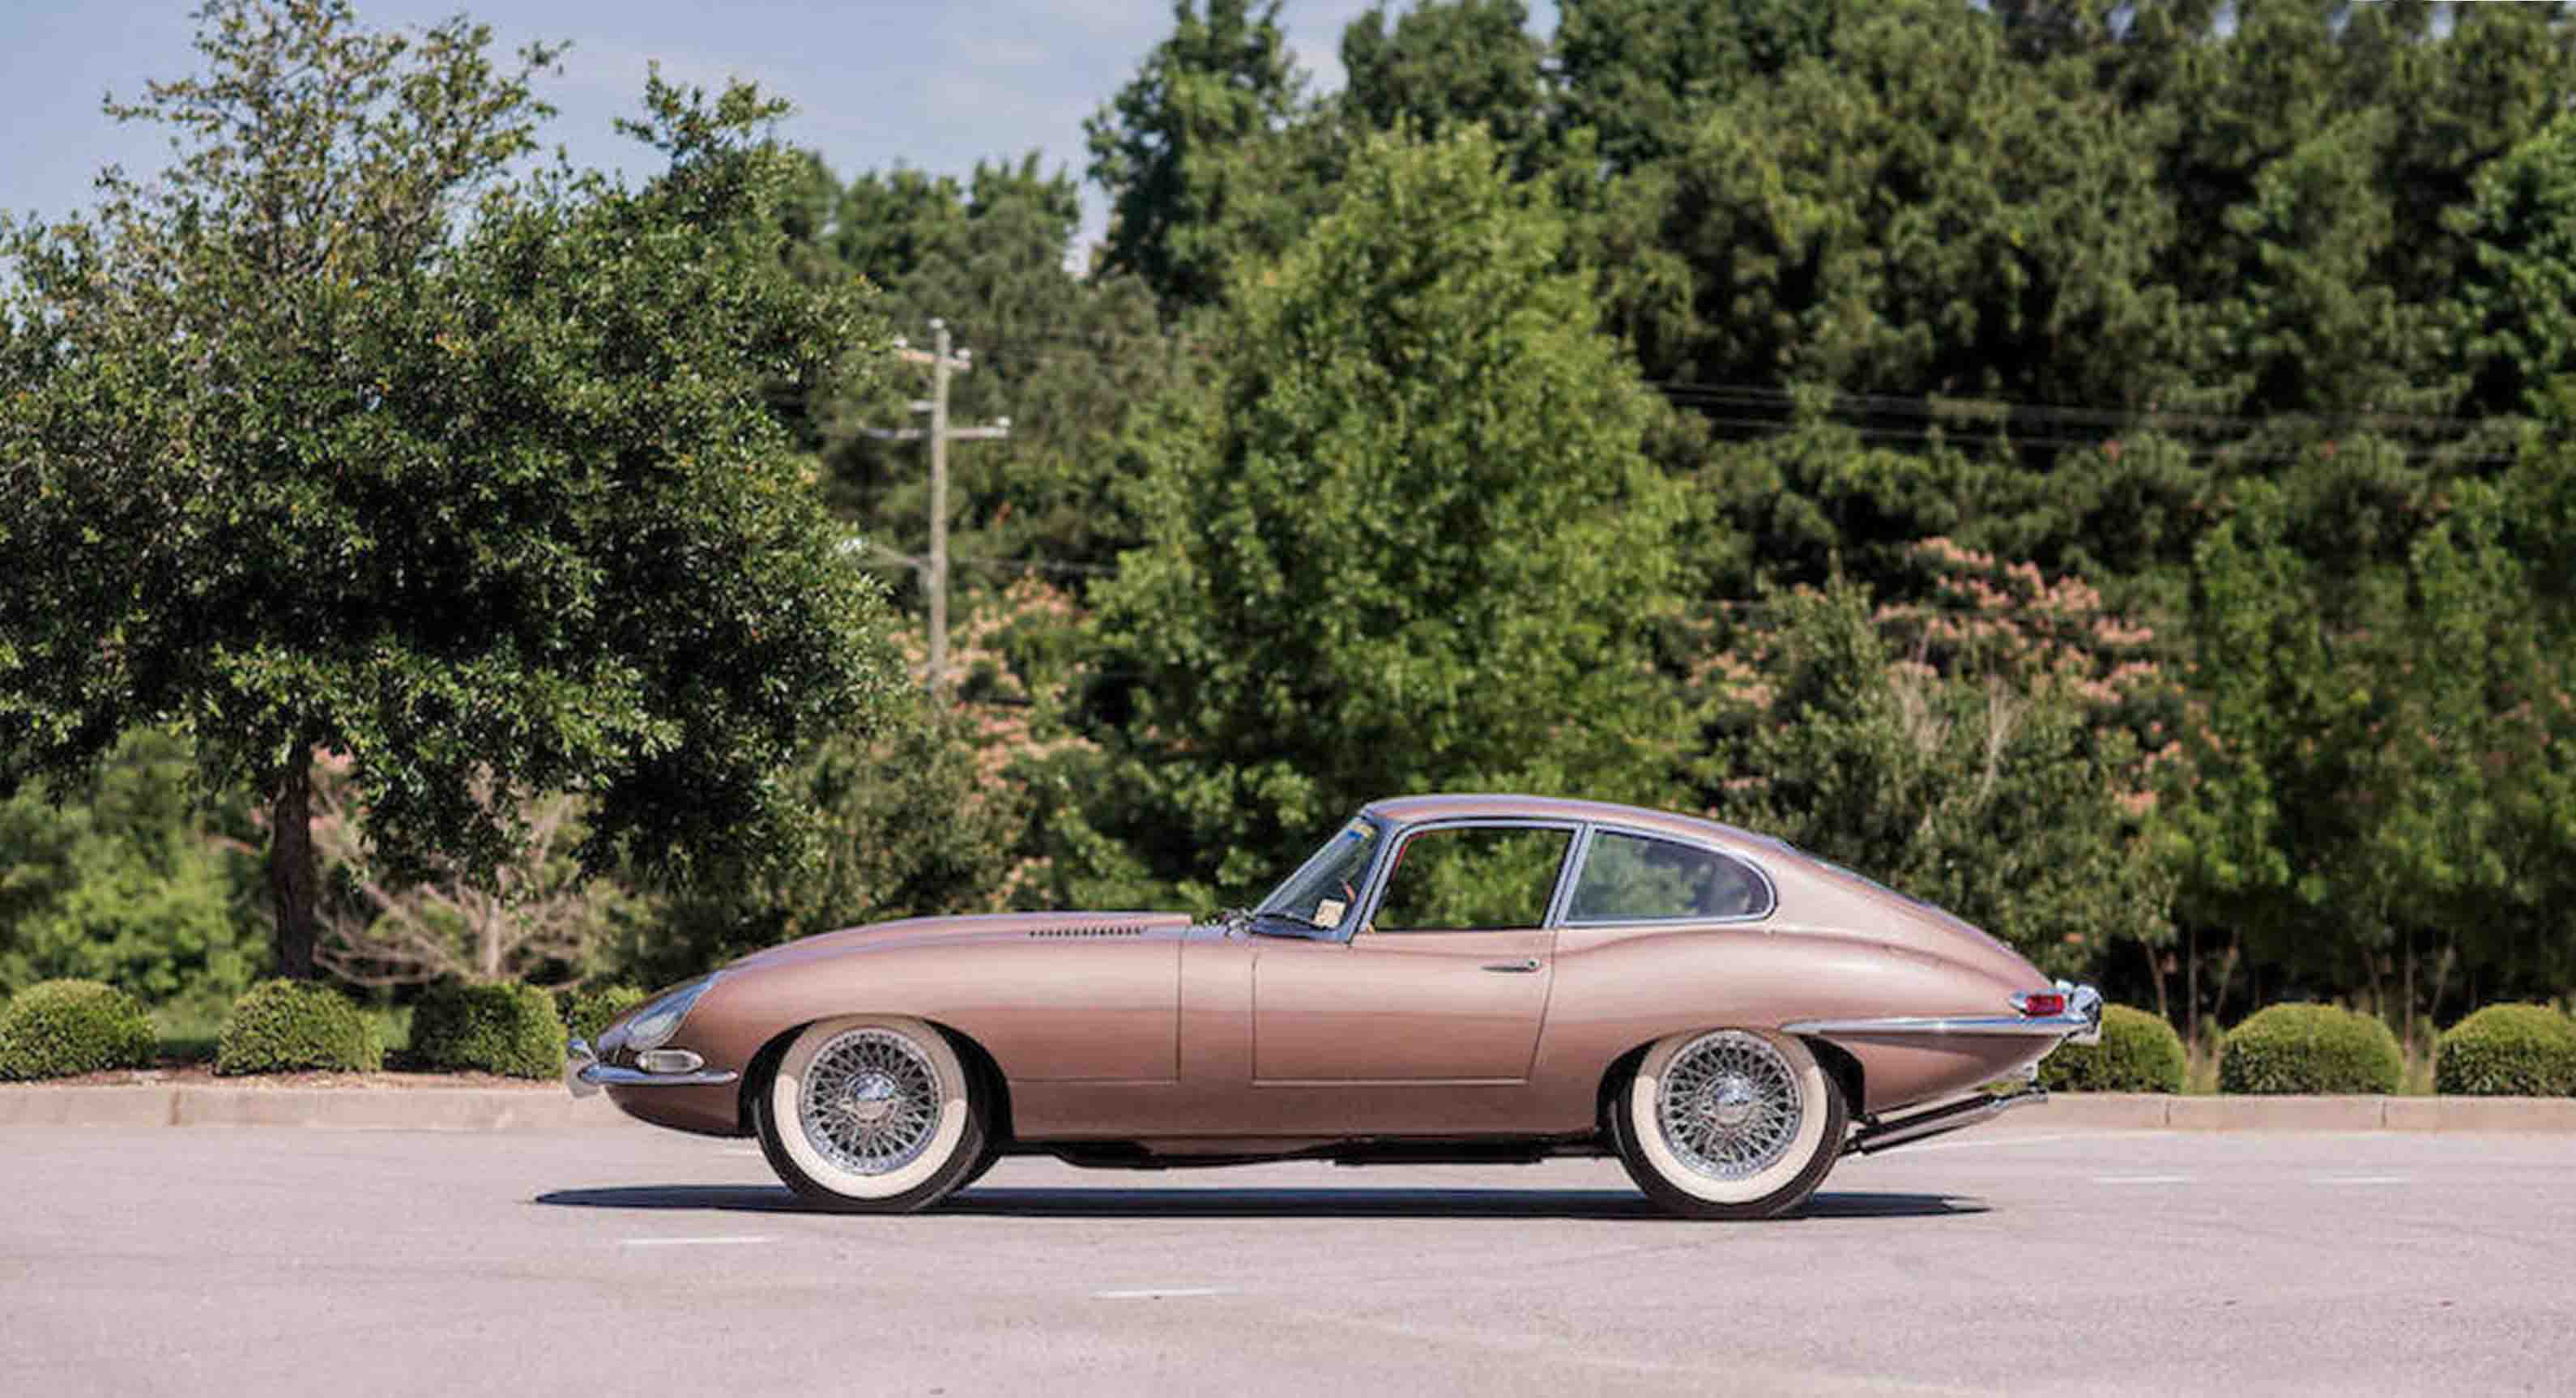 The Jaguar E Type That Everyone Is Talking About